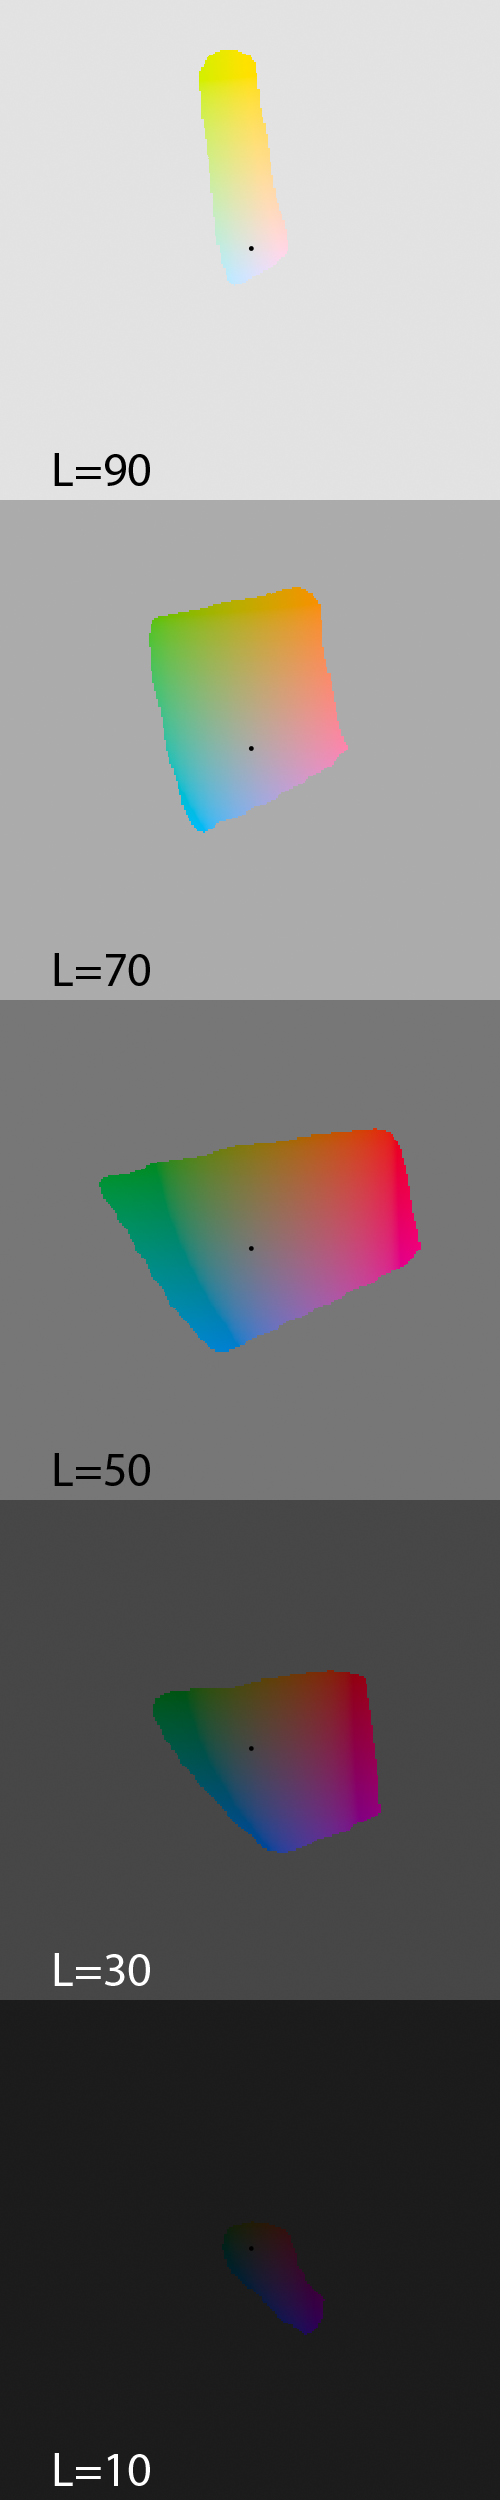 Lab a versus b channels - inside sRGB gamut